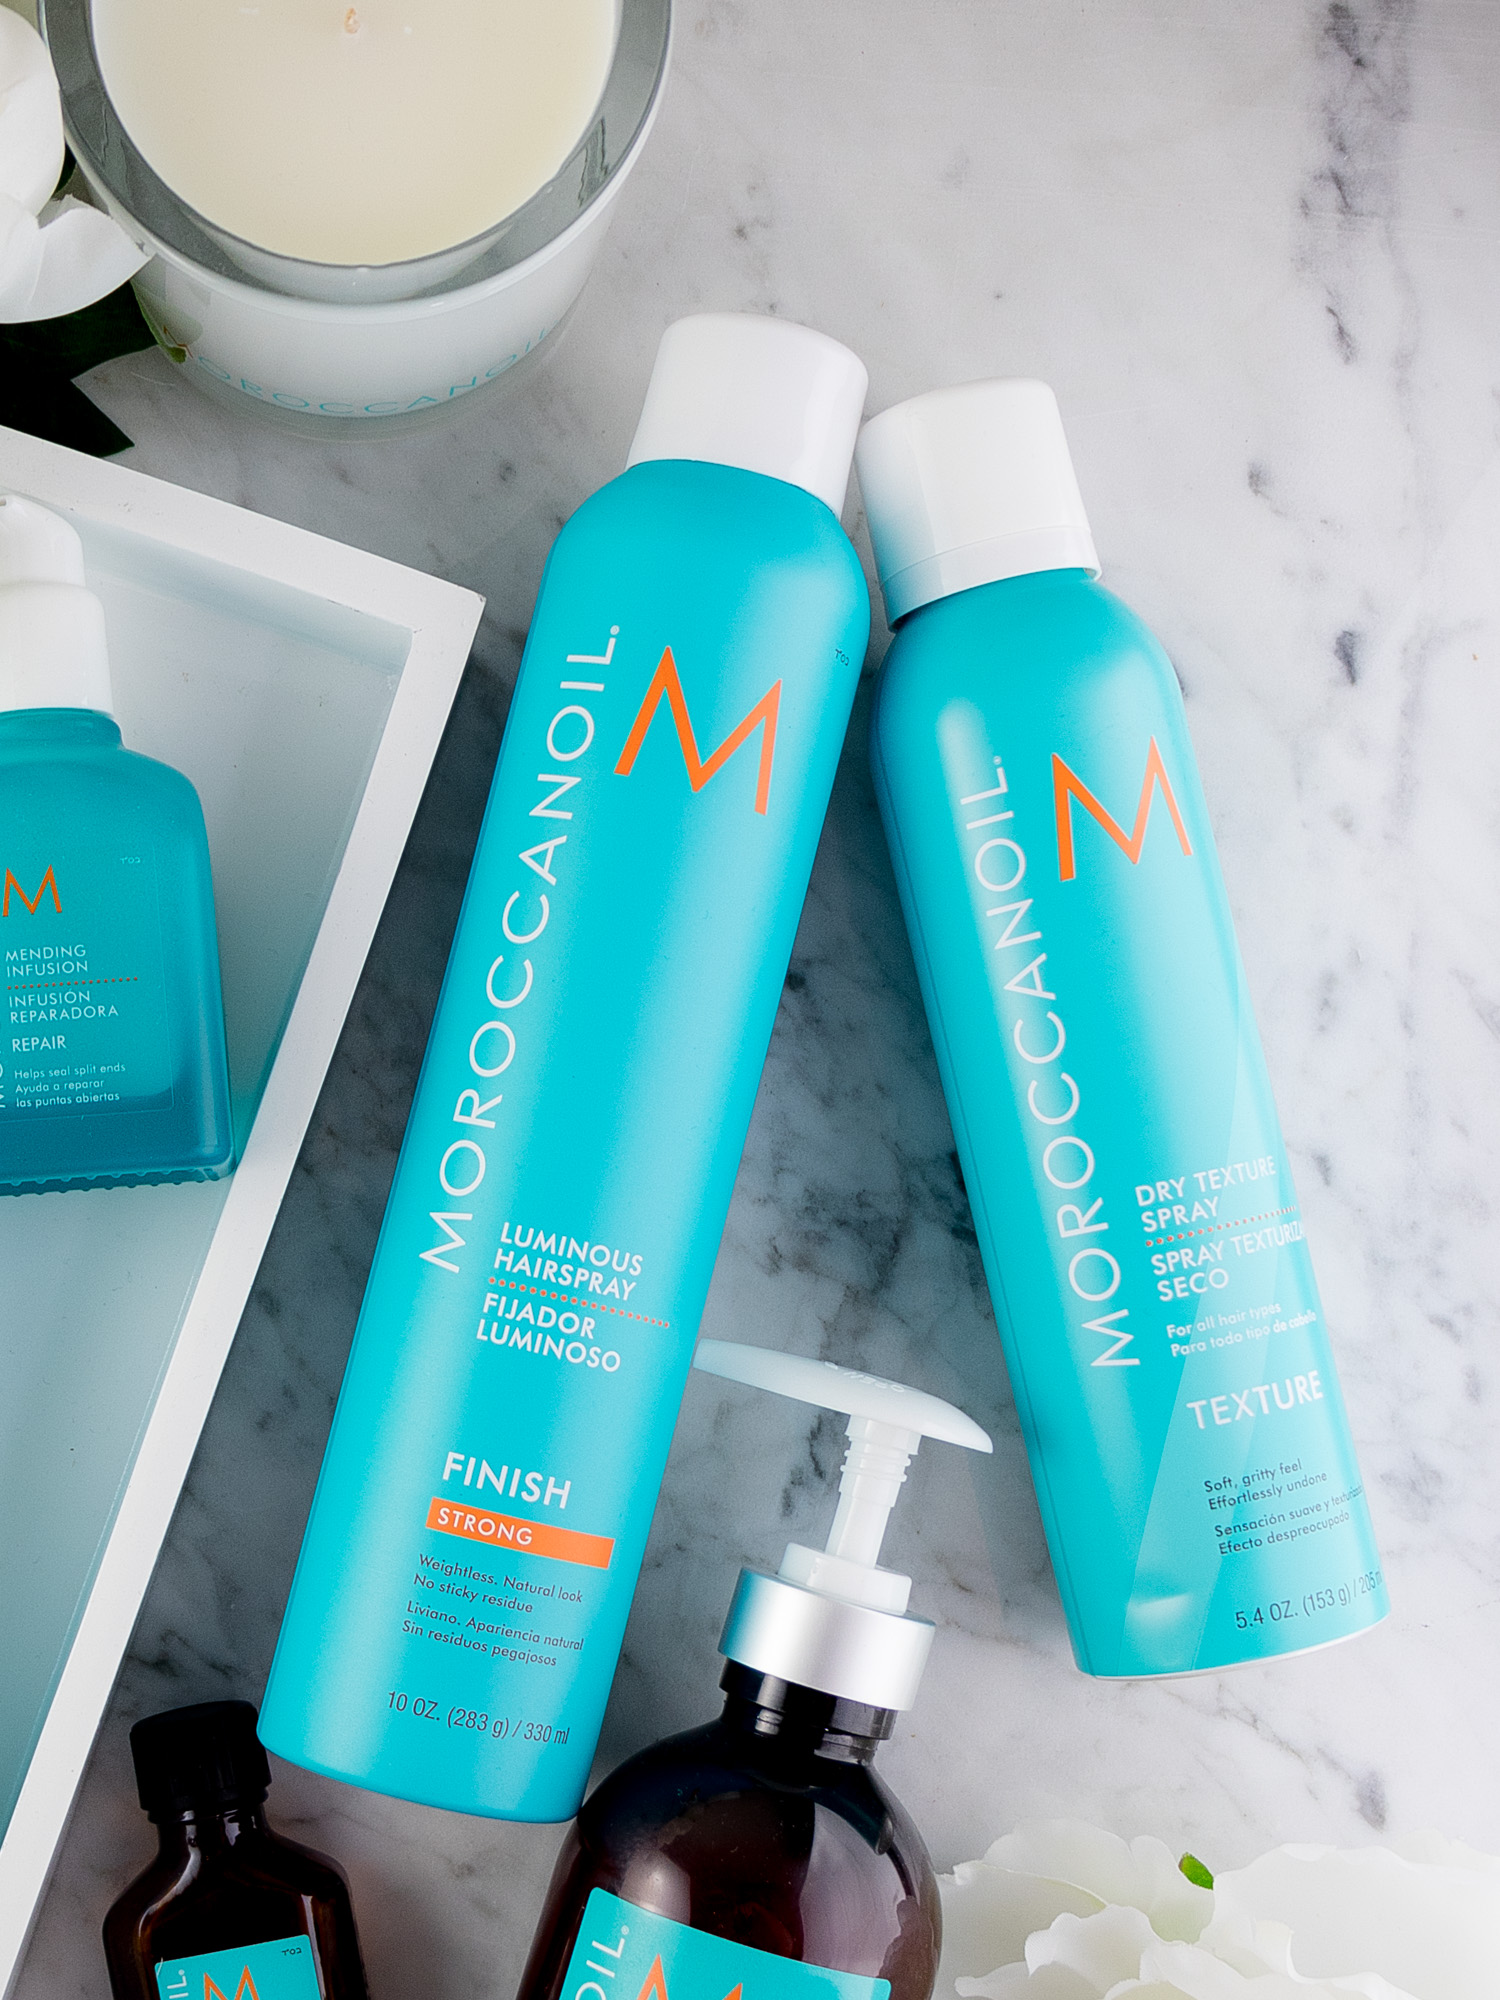 Moroccanoil Must-Haves: Dry Texture Spray & Luminous Hairspray